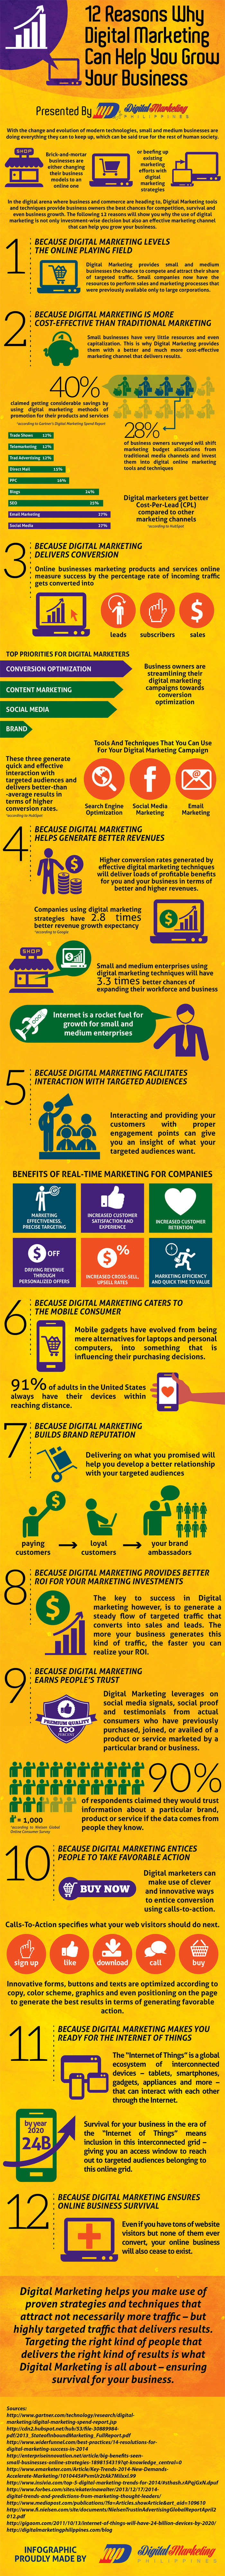 Digital marketing levels the playing field.